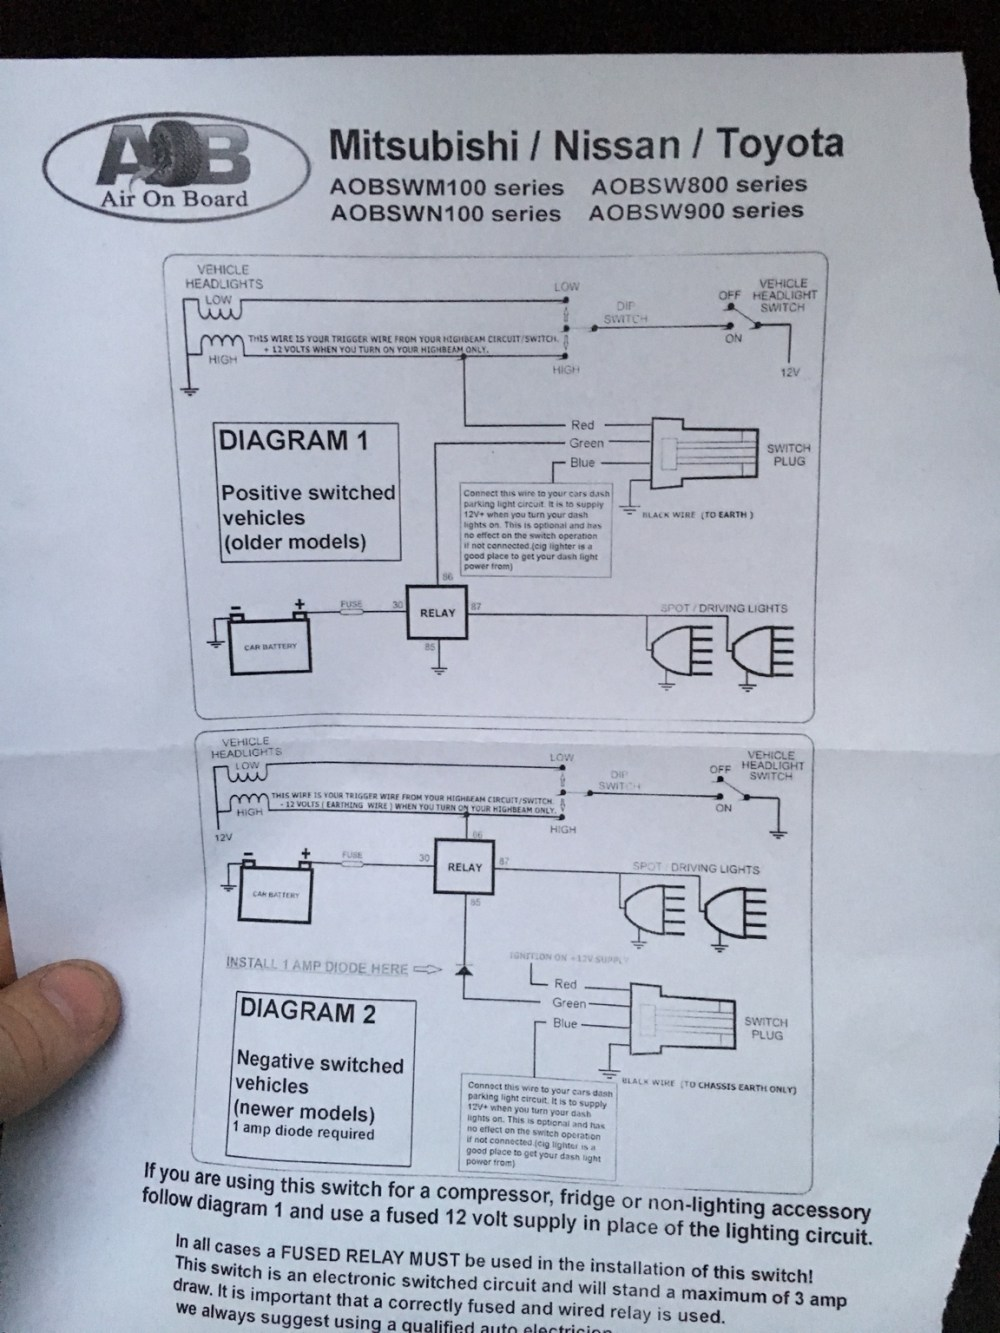 medium resolution of how do i wire my rigid light bar to this aob switch says i need a diode any help appreciated